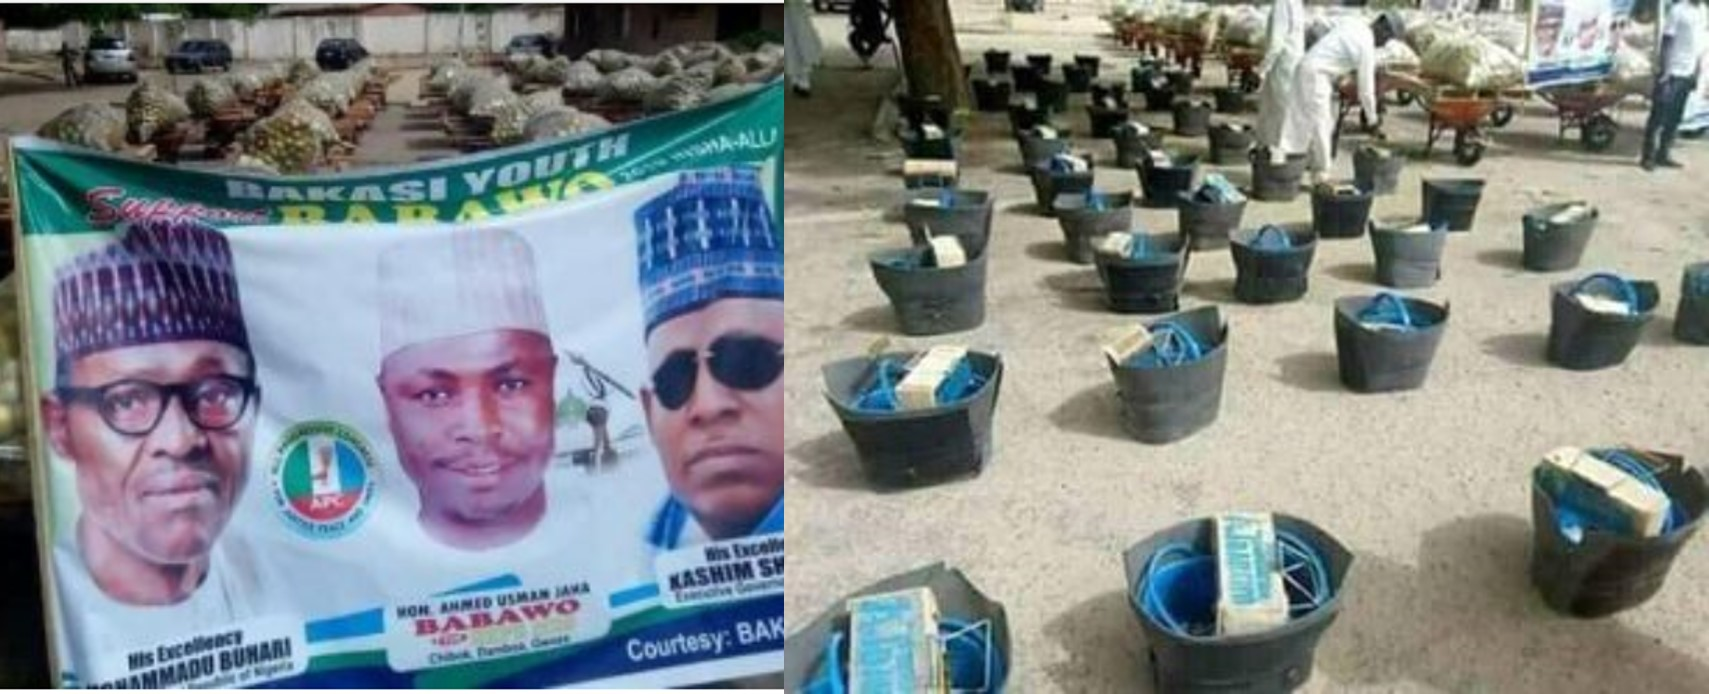 Jubilation as House of Reps member empowers Borno youths with shoe shining kits, bags of oranges, others (photos)